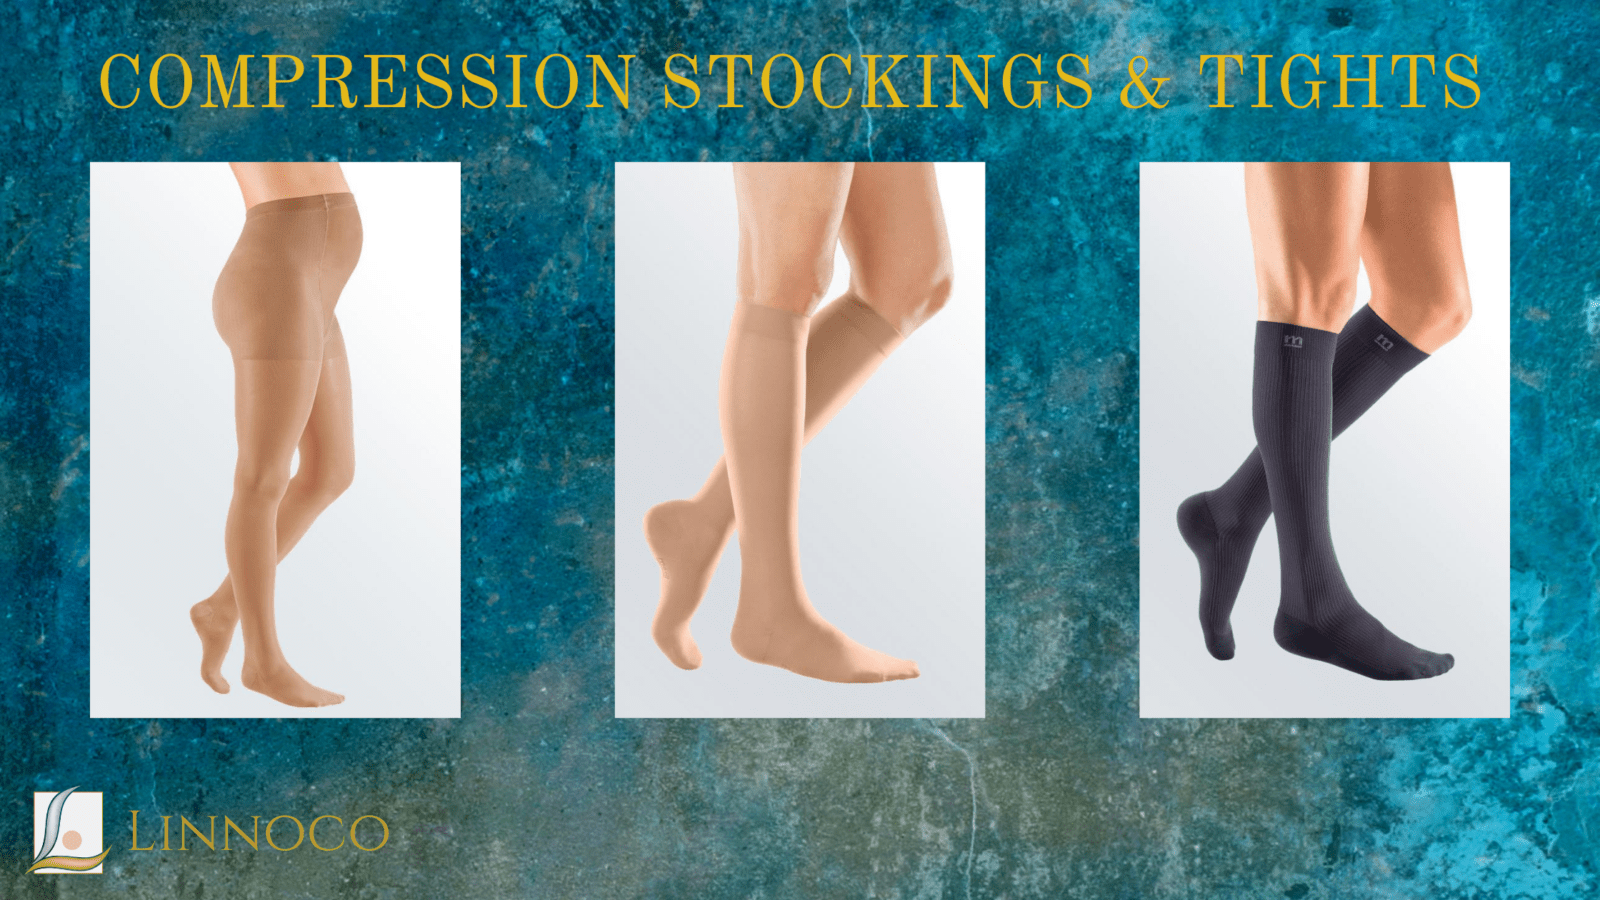 Compression garments for legs